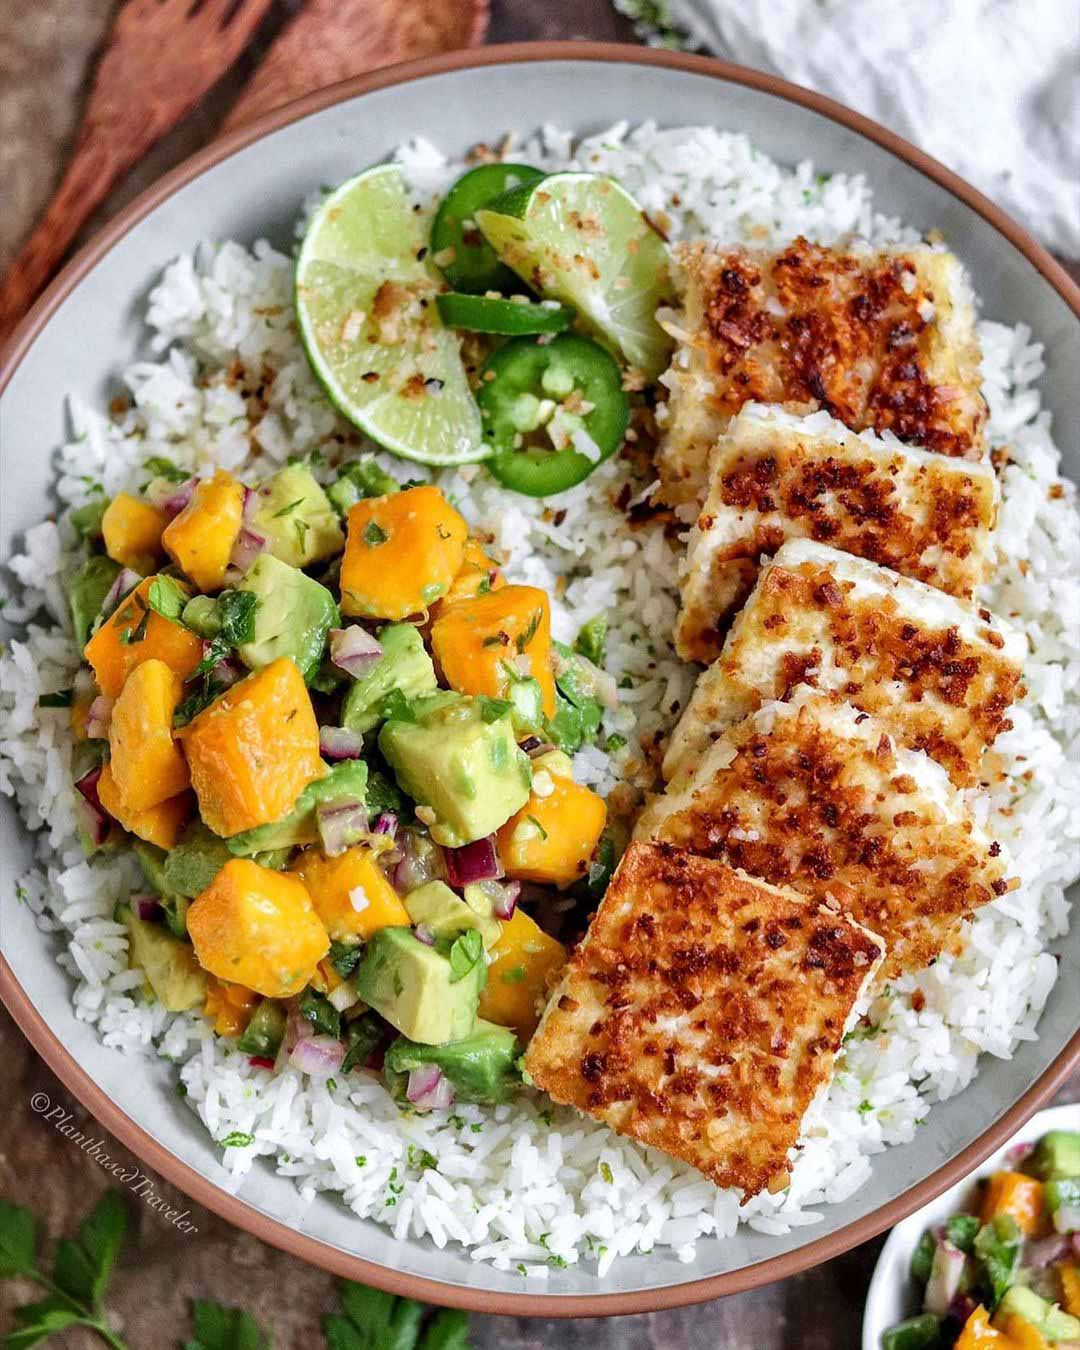 Coconut Panko Crusted Tofu with Mango Avocado Salad recipe served on a plate with rice.